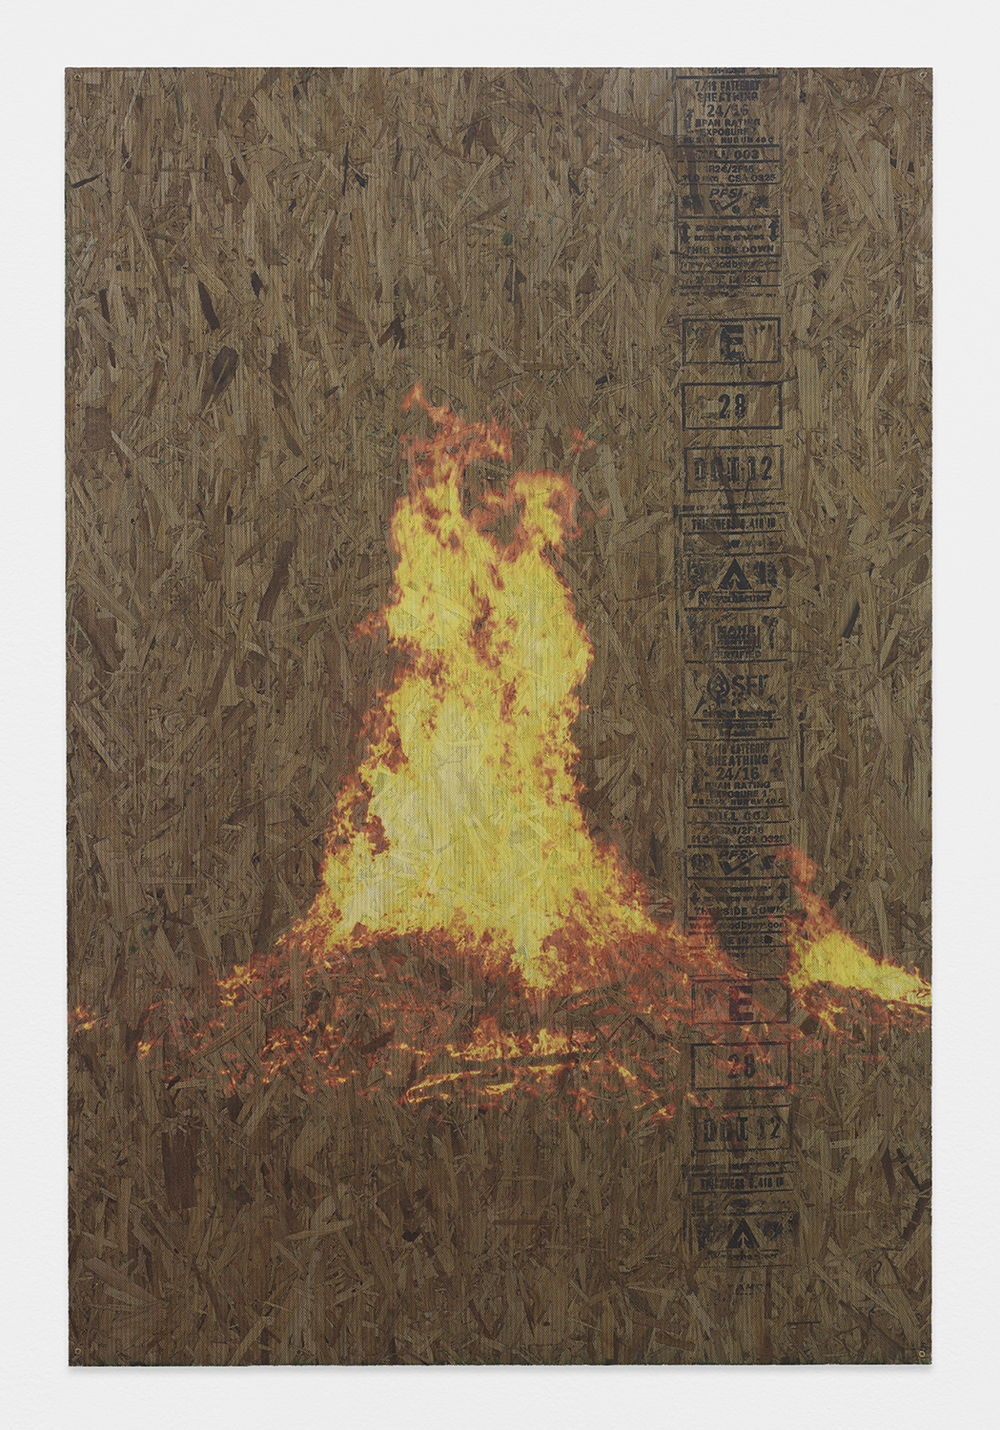 PETER SUTHERLAND  Austrian Solstice  , 2013   Inkjet on perforated vinyl applied to particle board   72 x 48 inches